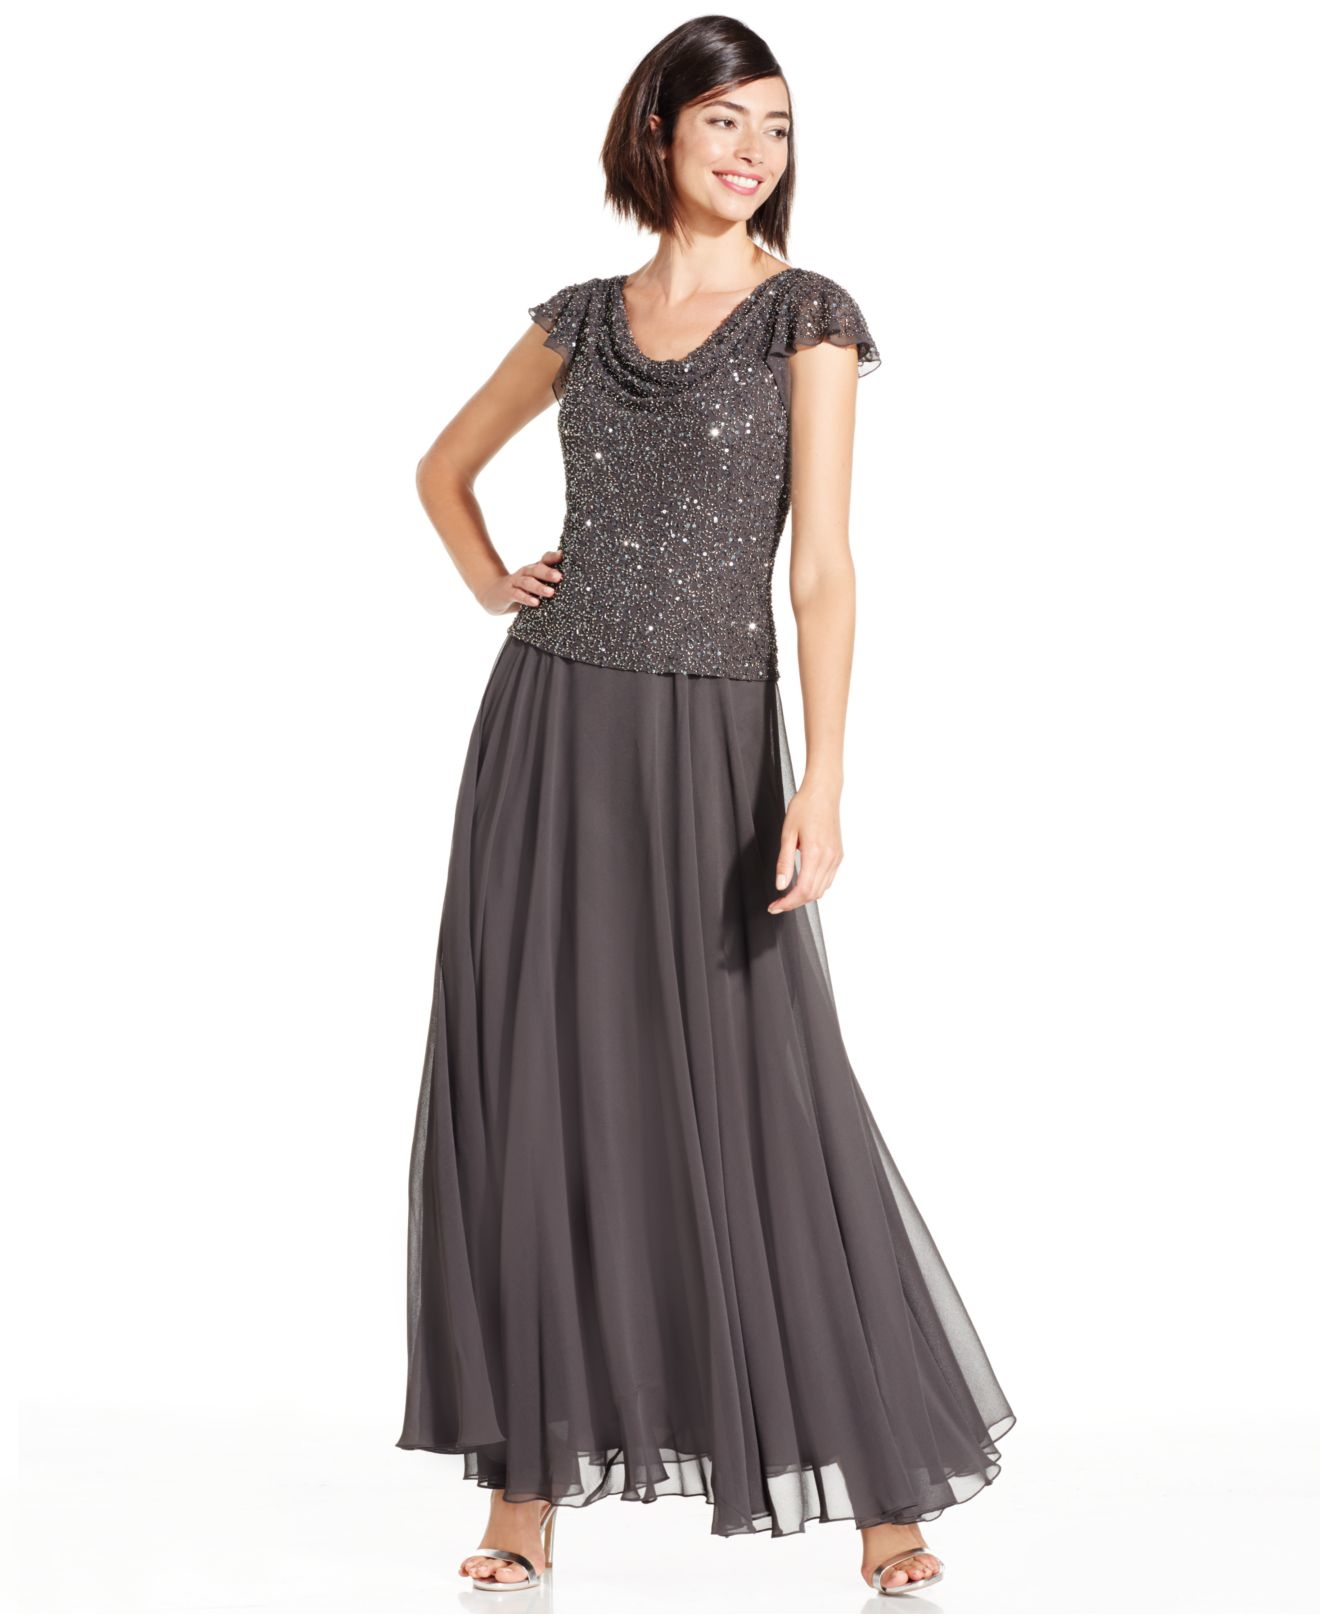 Lyst - J Kara Sequin-Encrusted Chiffon Gown in Gray